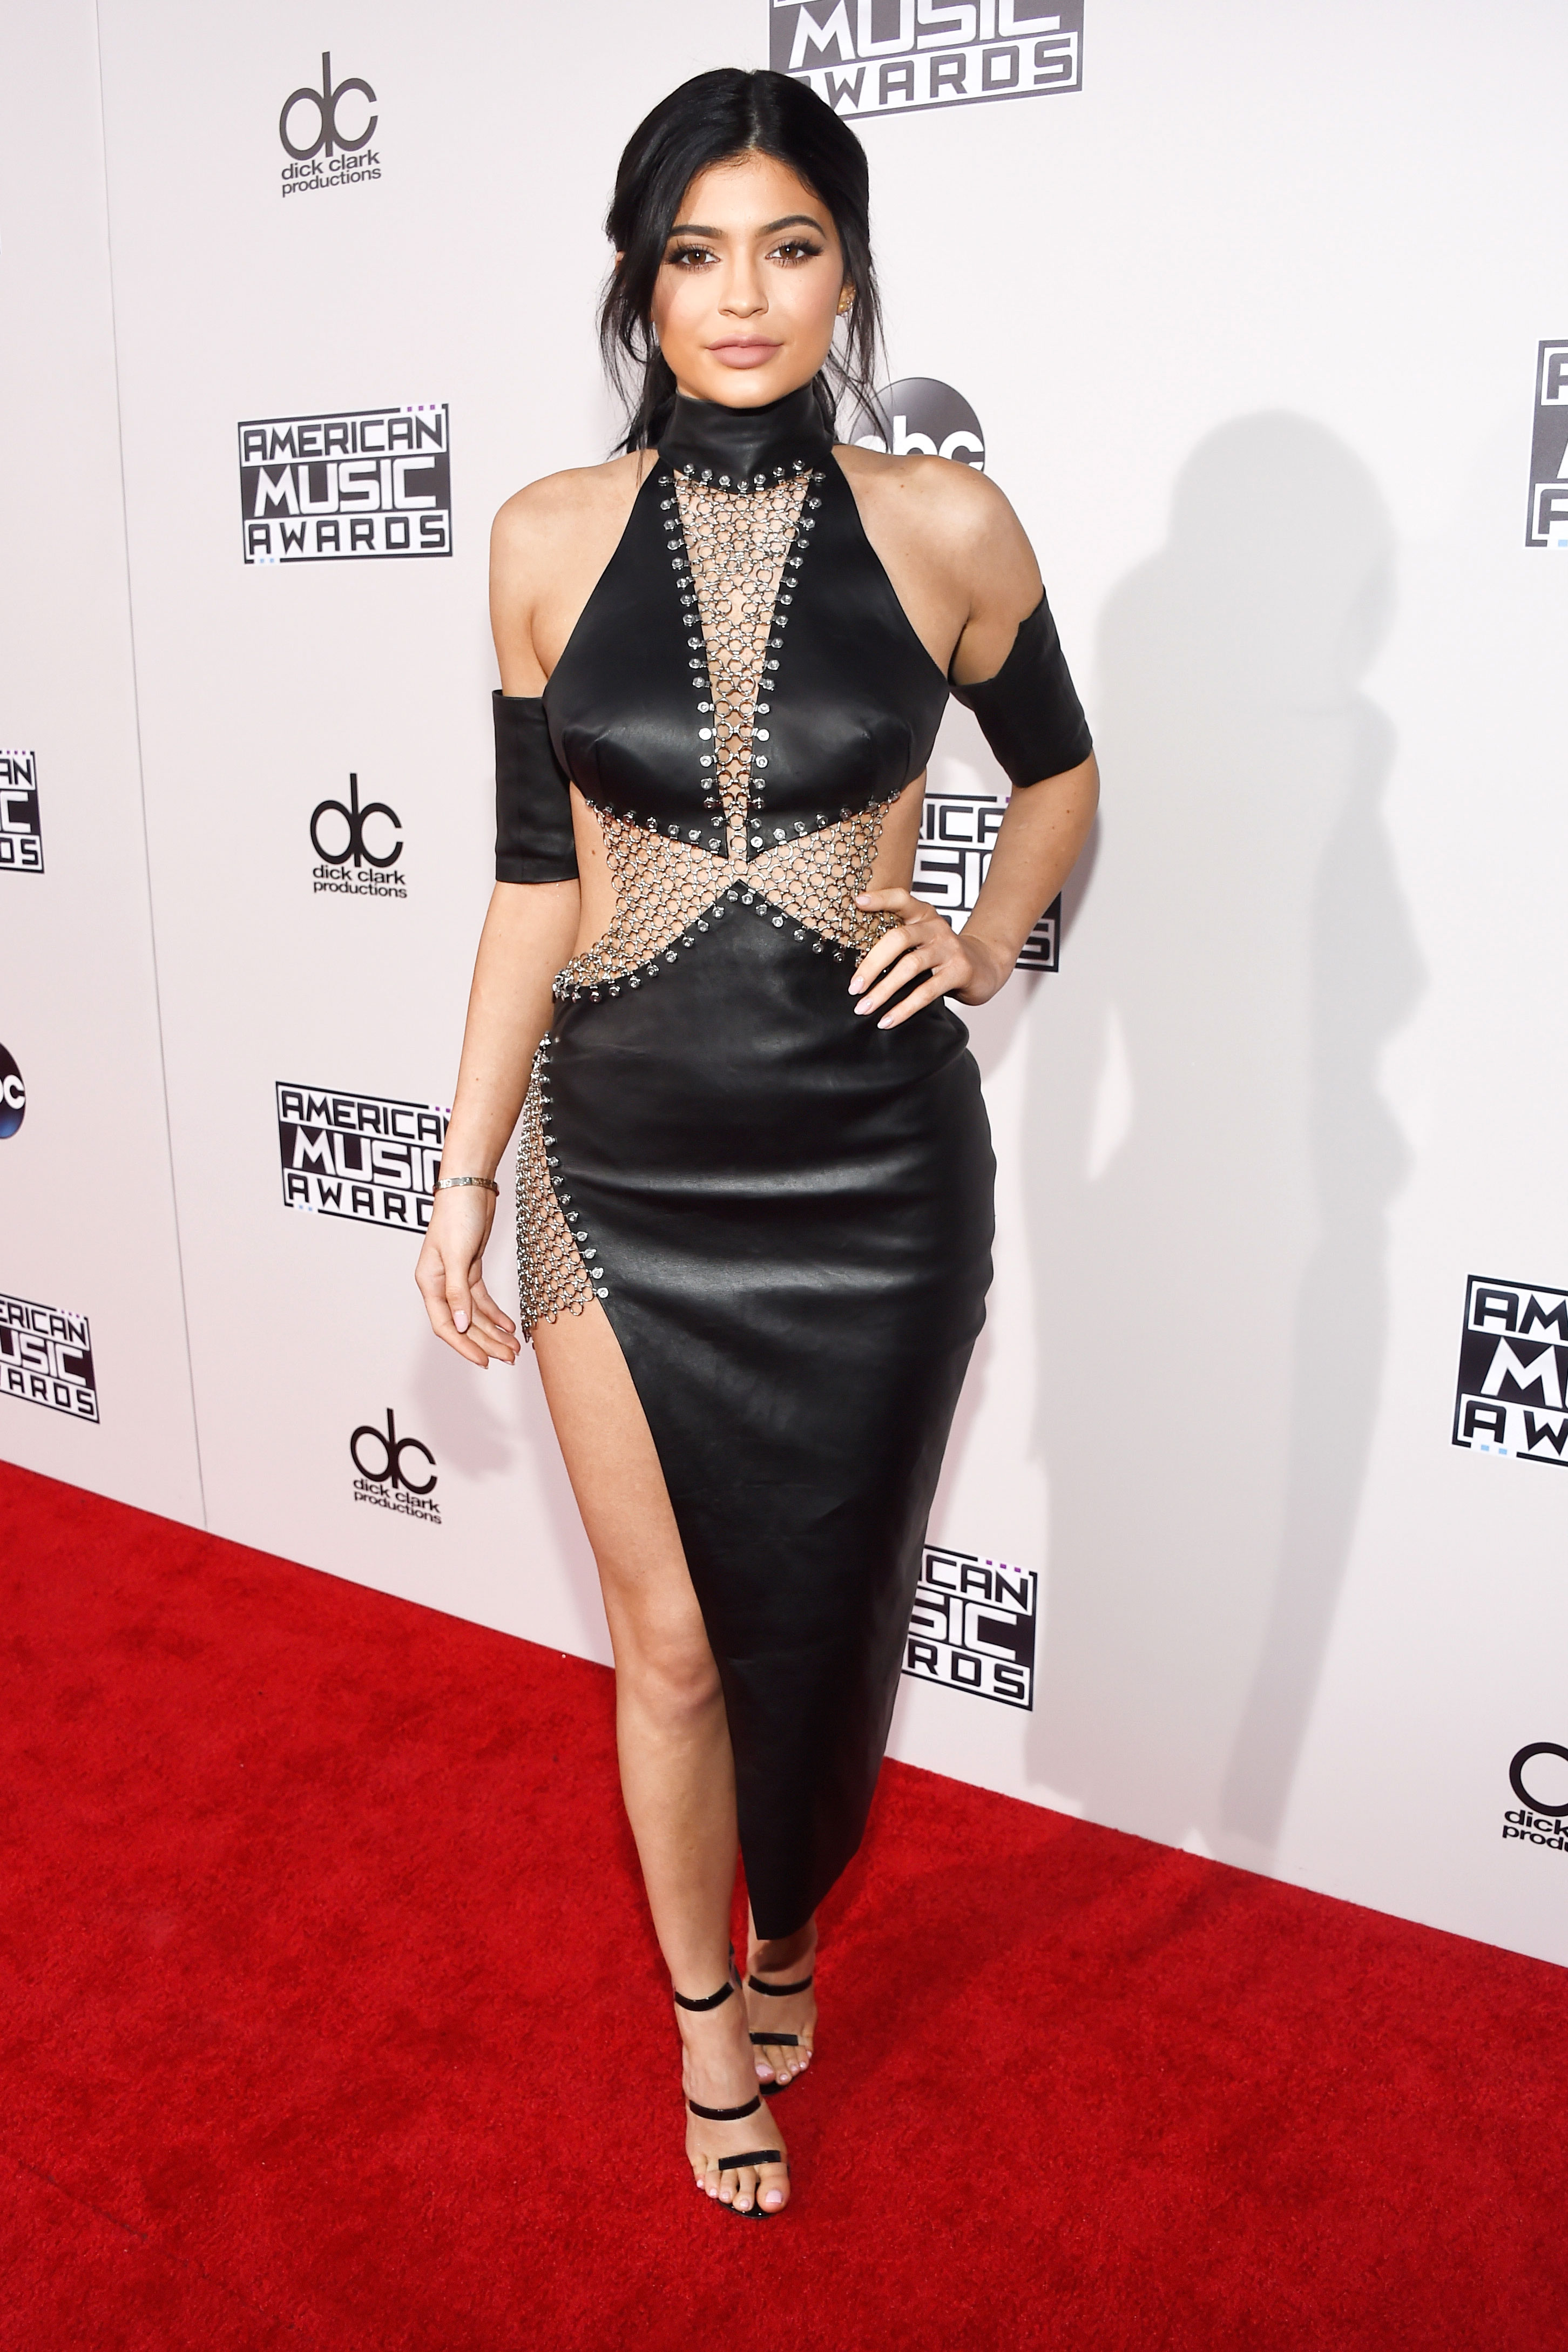 See All the Best Looks From the 2015 American Music Awards